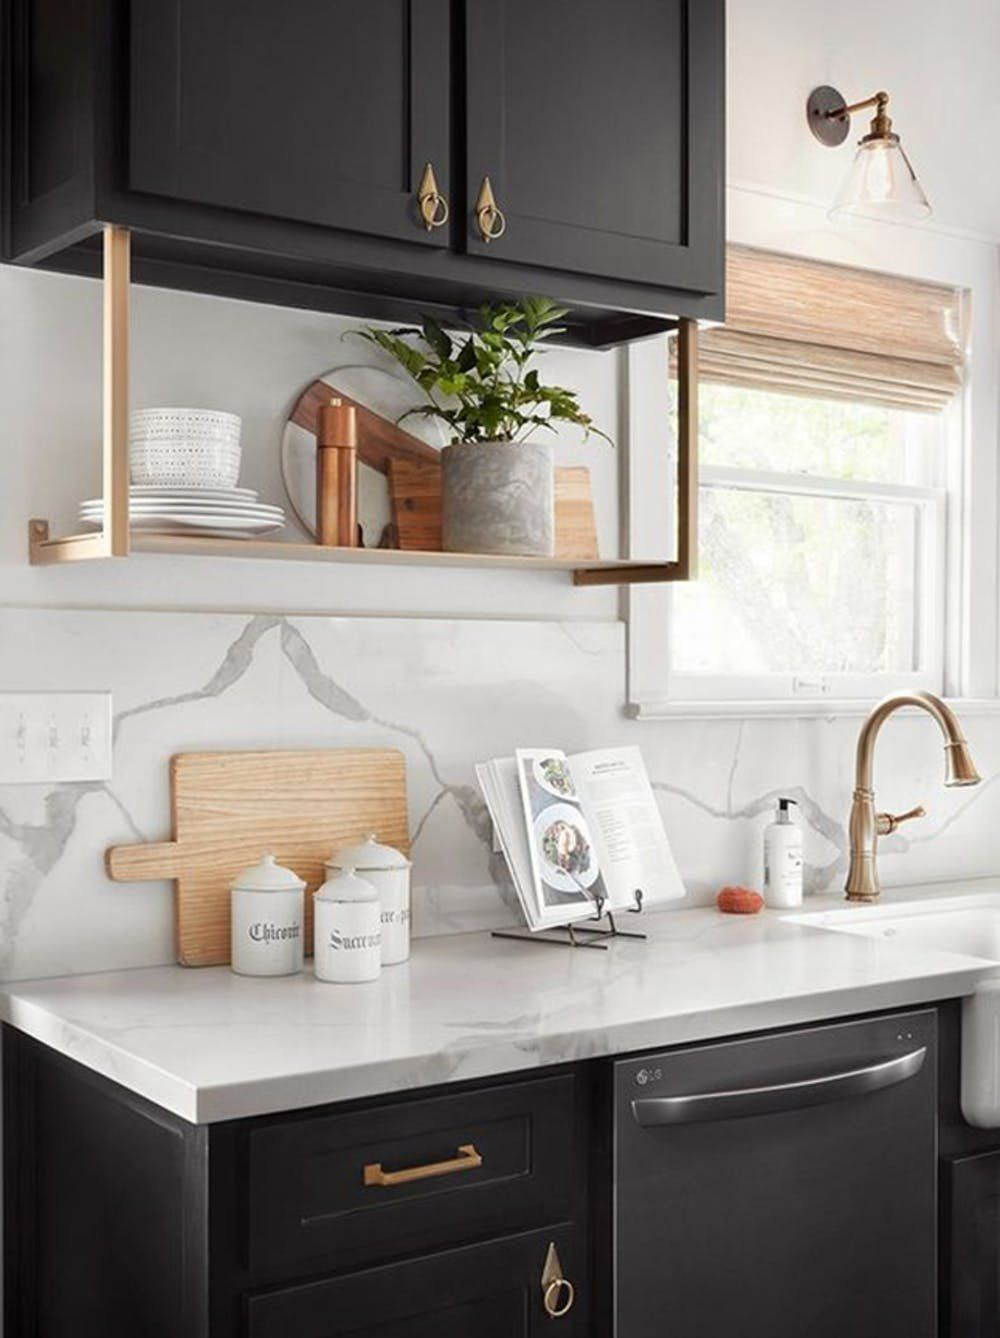 kitchen decor ideas and trends for 2019 kitchen decor must rh pinterest com